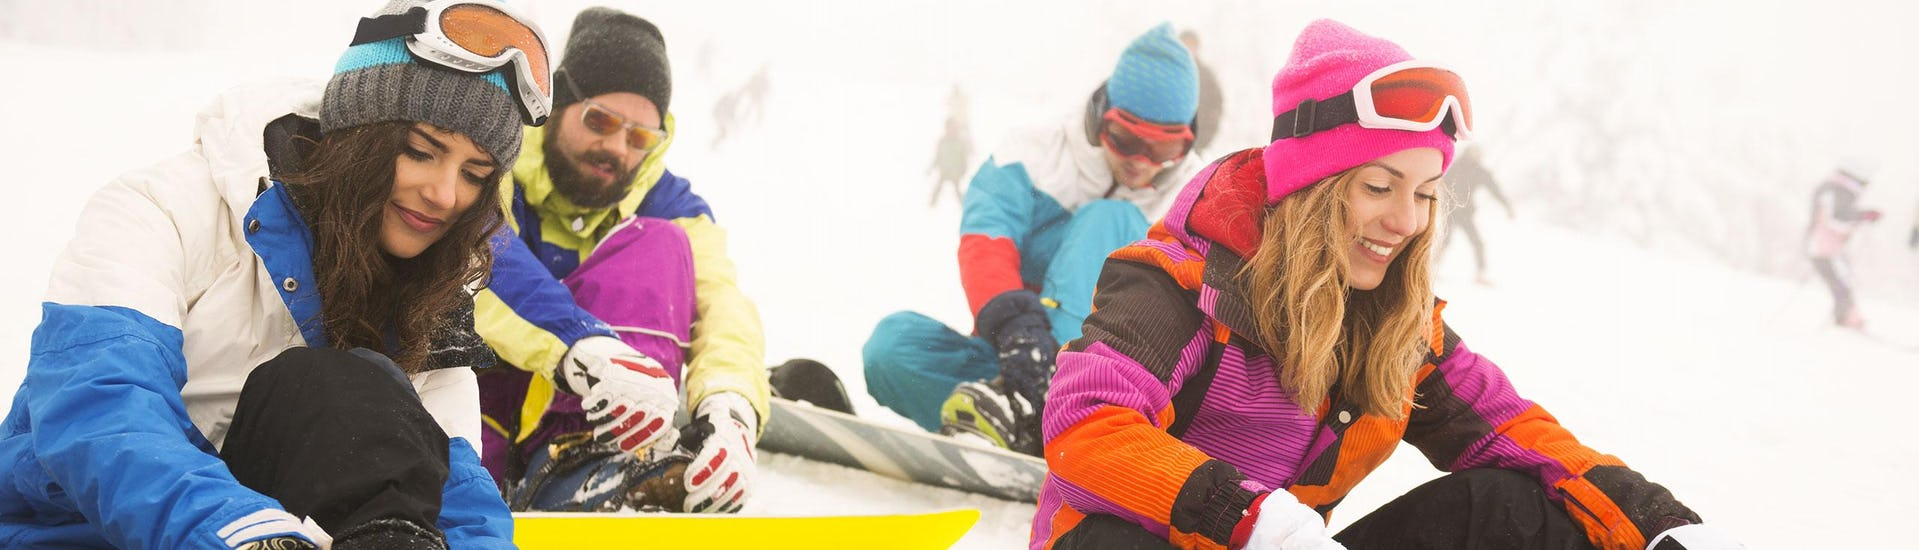 Snowboard Instructor Private - All Levels & Ages: Een groep snowboarders bereidt zich voor op hun snowboardles die wordt georganiseerd door Scuola Sci & Snowboard 2000.